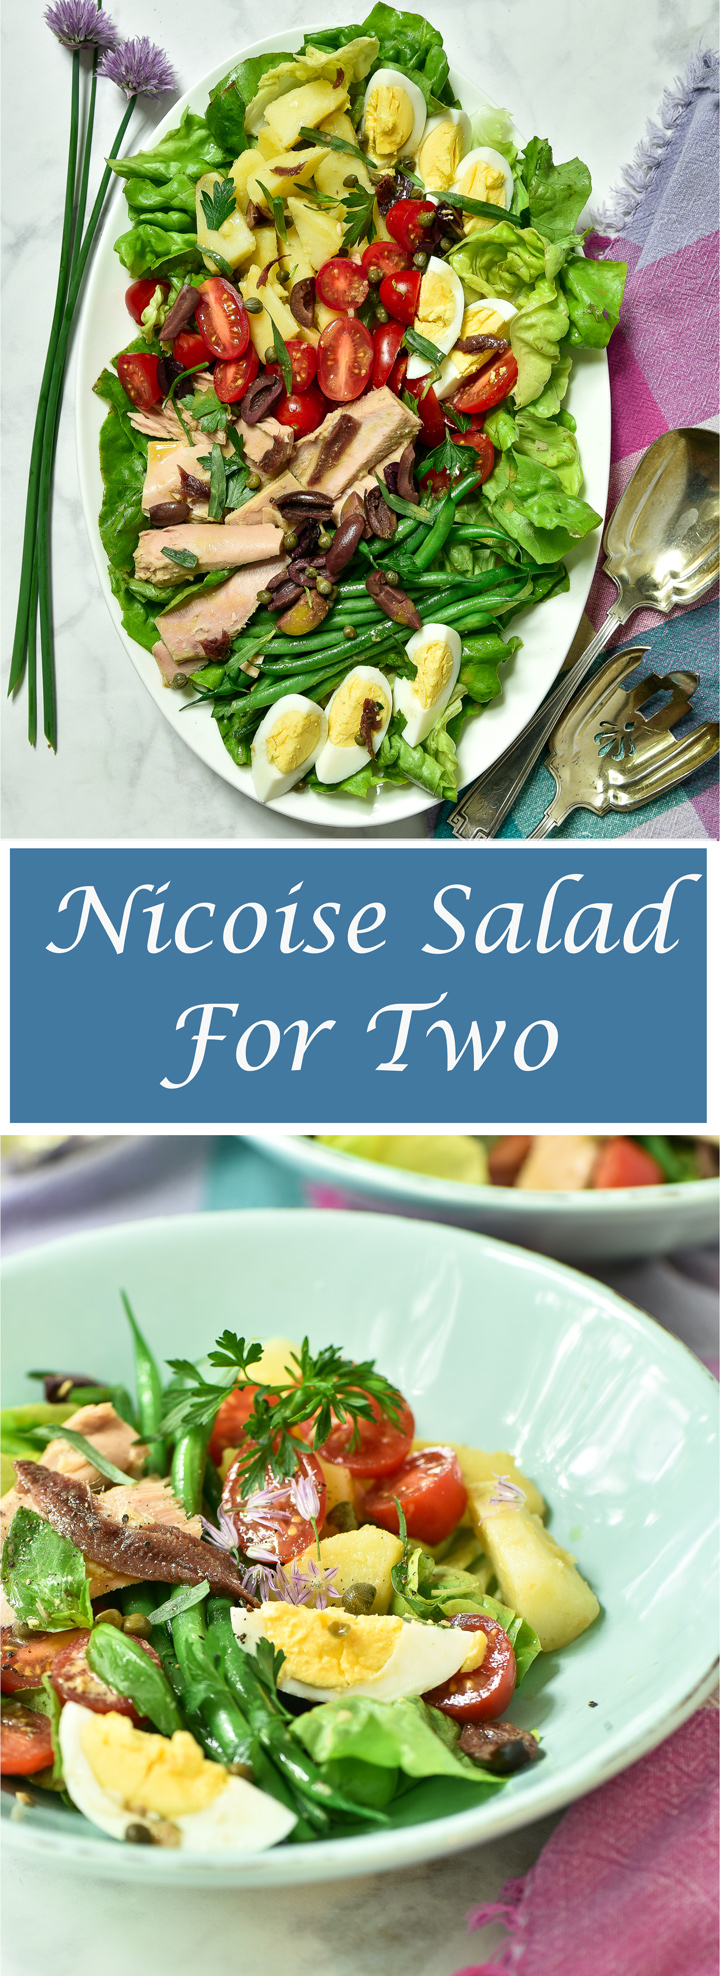 My Classic Nicoise Salad for Two. Nocoise Salad is a classic salad from the French Rivera consisting of French green beans, tomatoes, anchovies and black cured olives. My recipe adds leafy greens, potatoes, capers, tuna fish and cooked eggs, dressed in an anchovy vinaigrette. It is a robust salad exemplifying the seasonal ingredients of the summer.